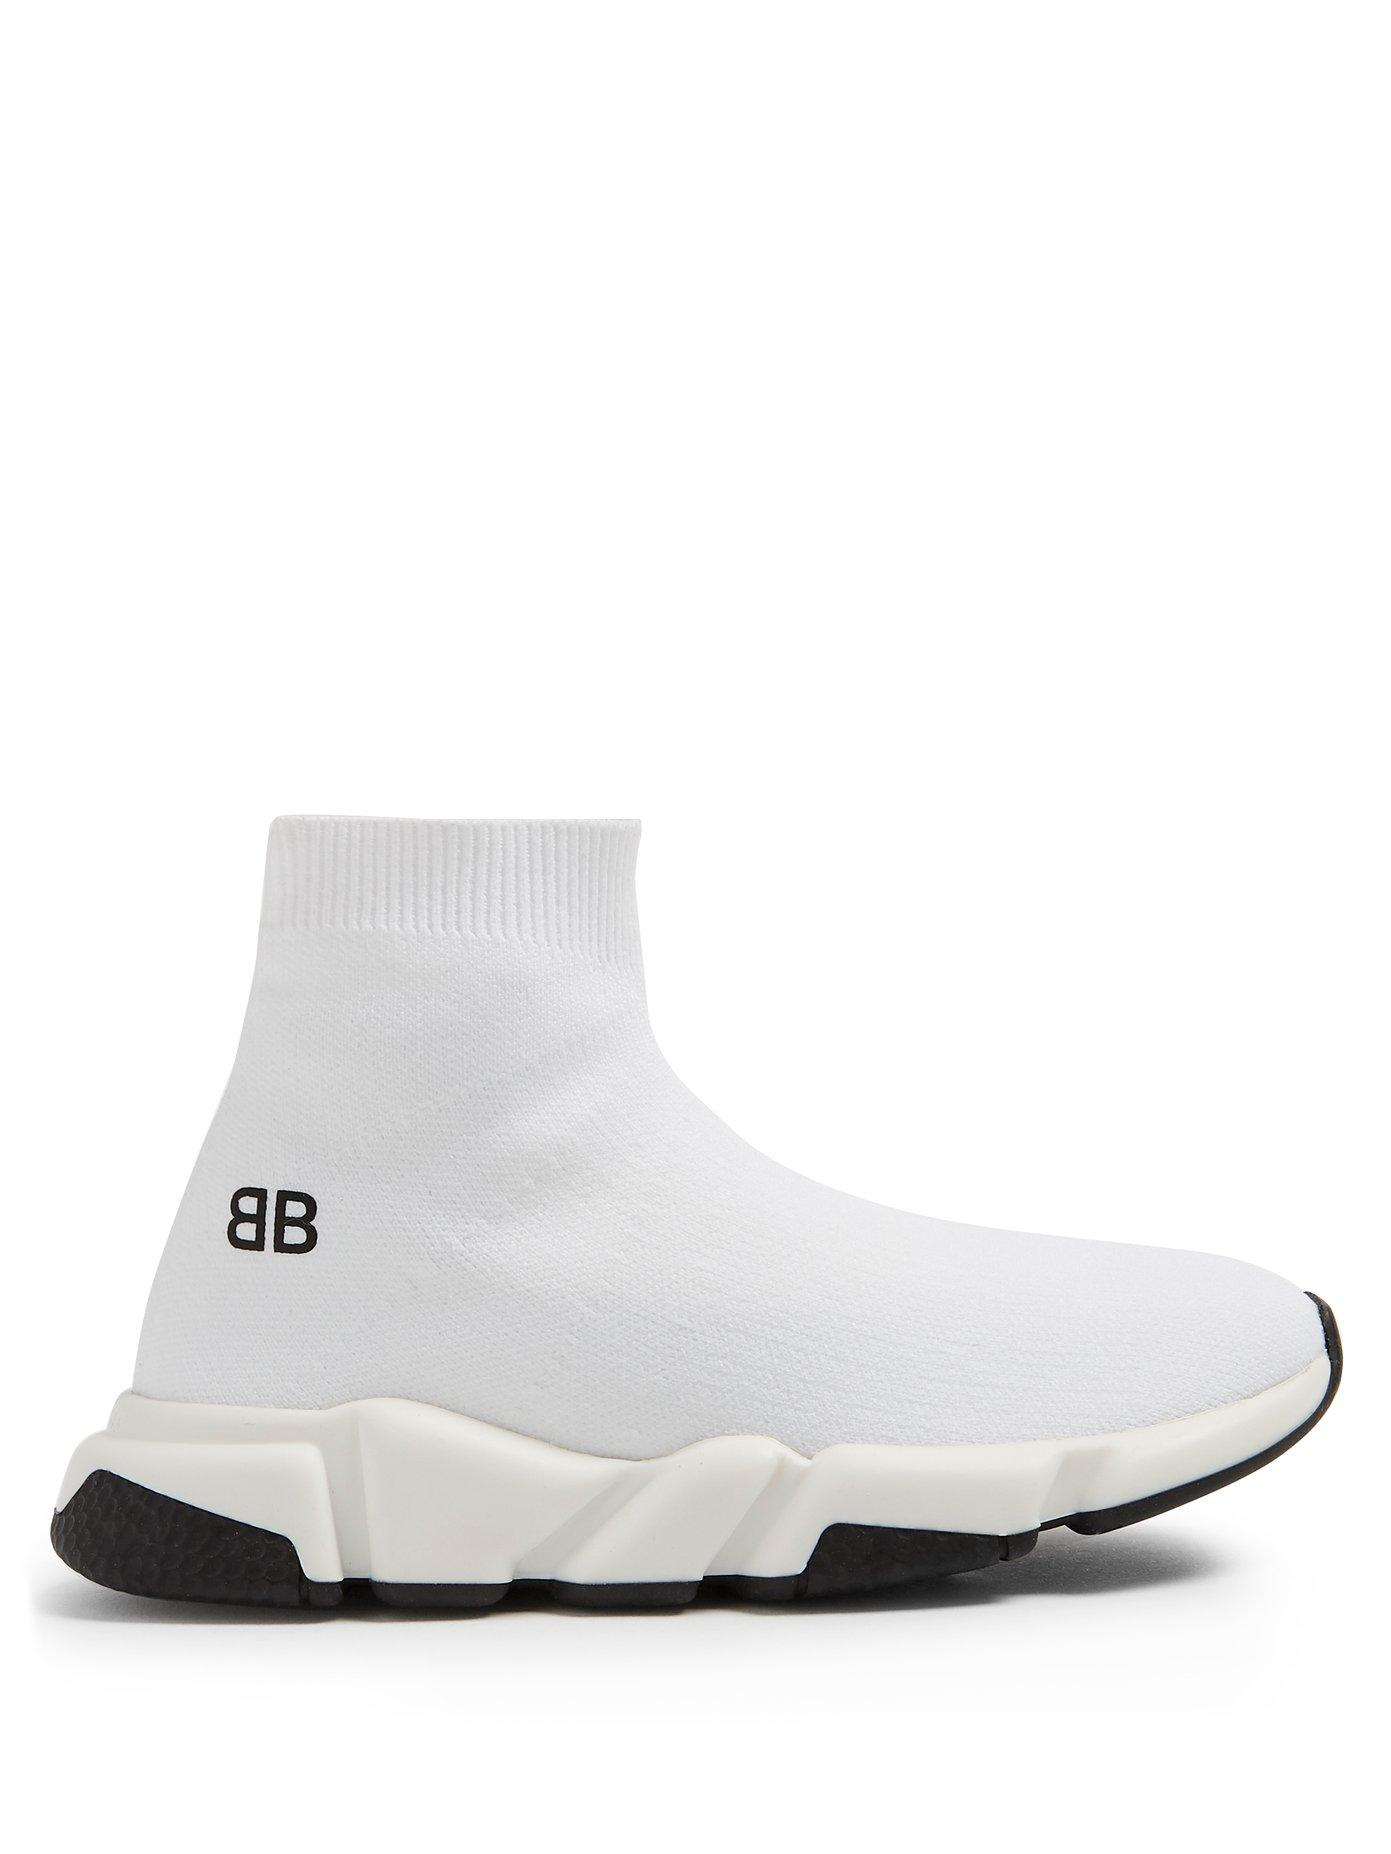 cc6d39ab2 Balenciaga has released its first foray into childrens footwear today — a small  assortment of Kids Speed Trainers